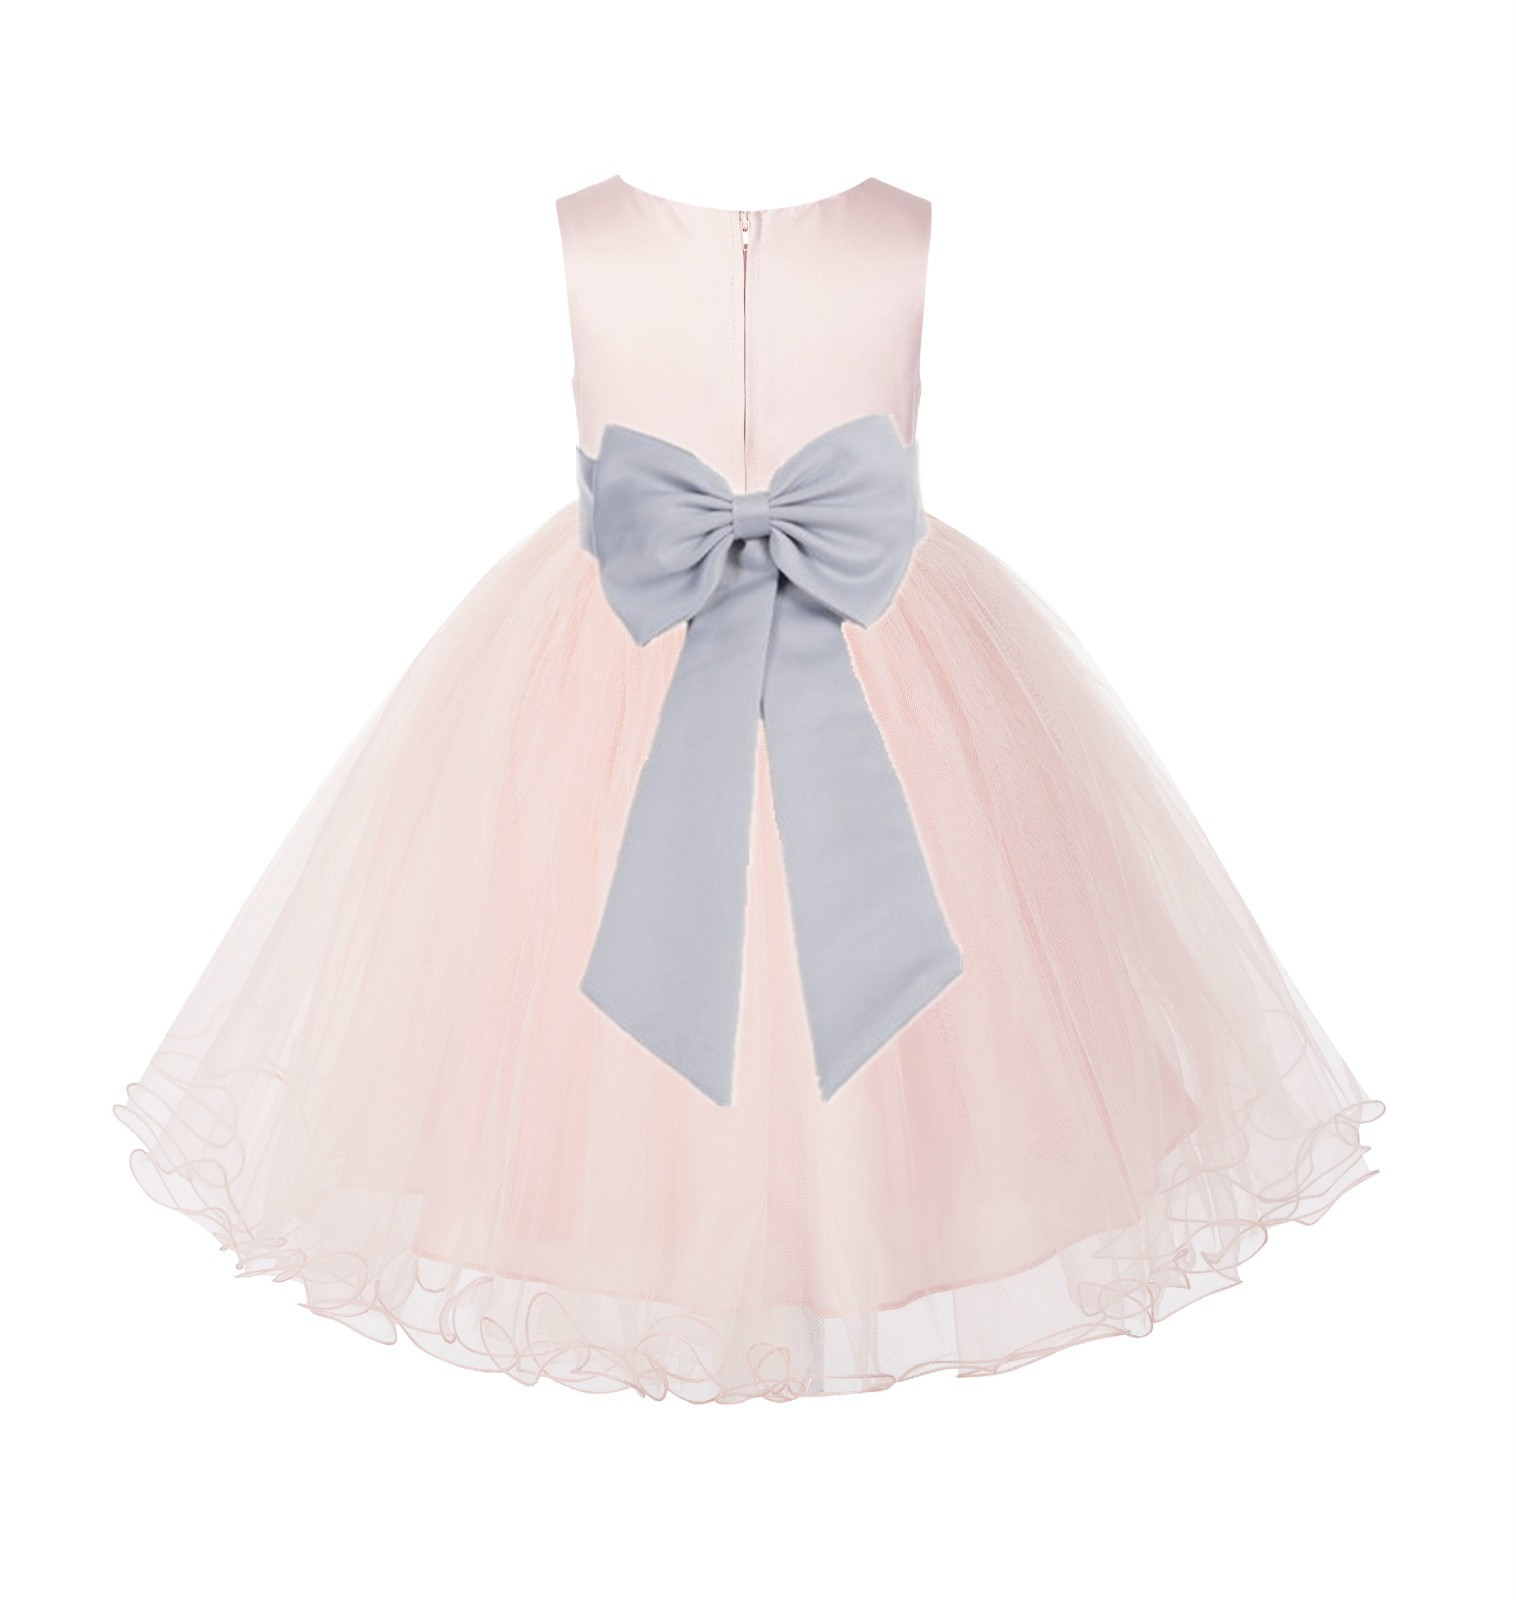 Blush PInk / Silver Tulle Rattail Edge Flower Girl Dress Wedding Bridesmaid 829T